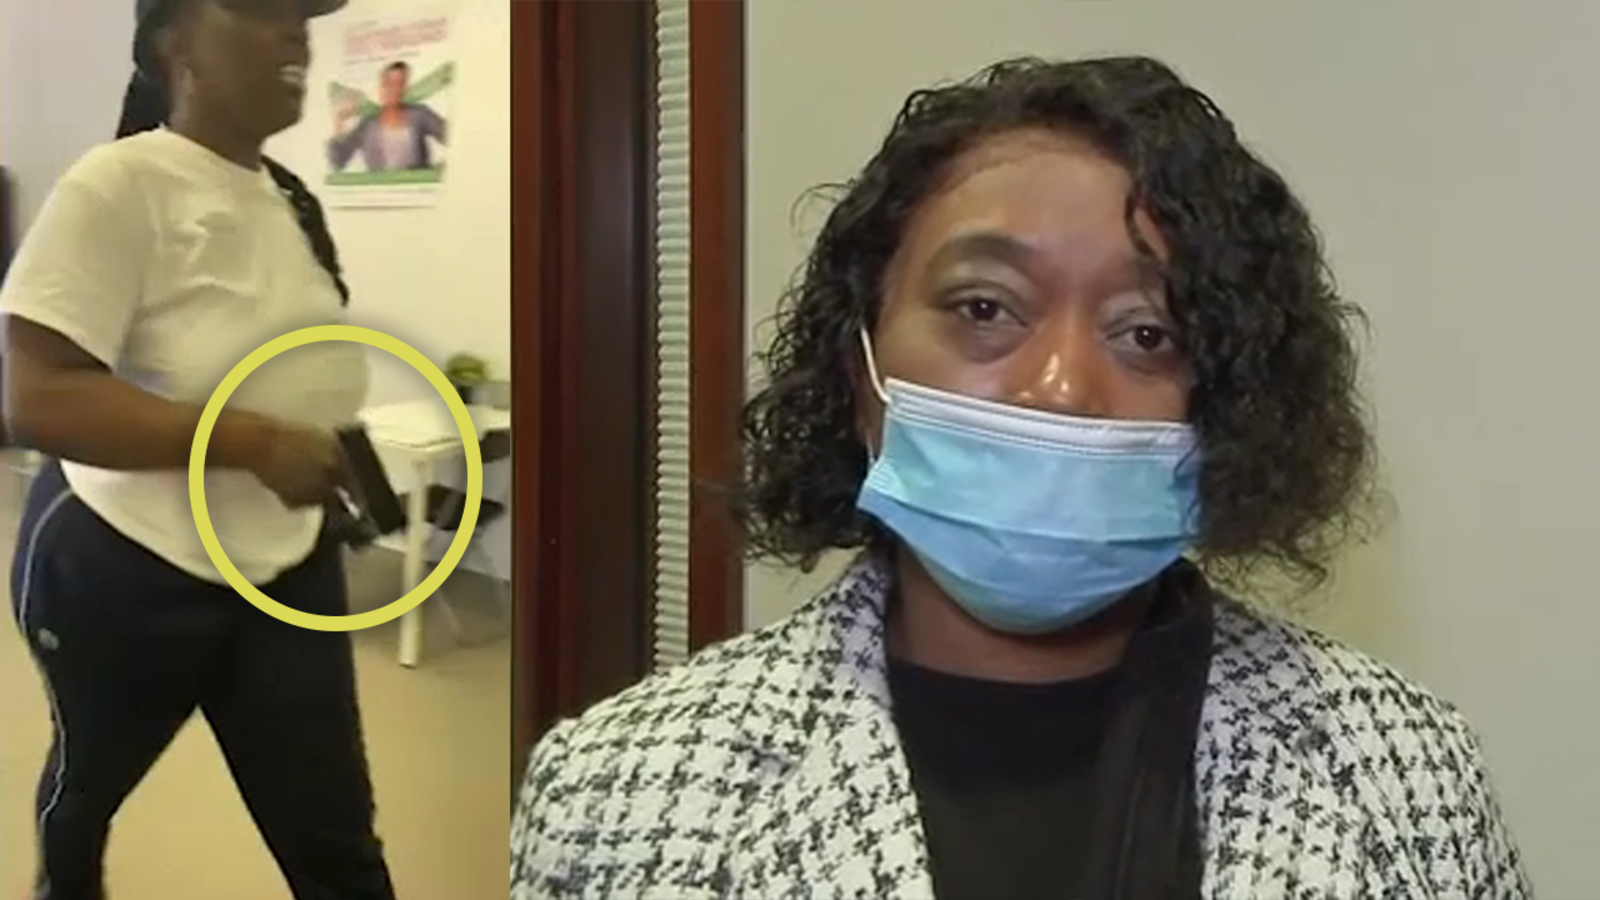 Houston tax preparer Latunya Wright seen pulling out gun says customers were harassing her over refund